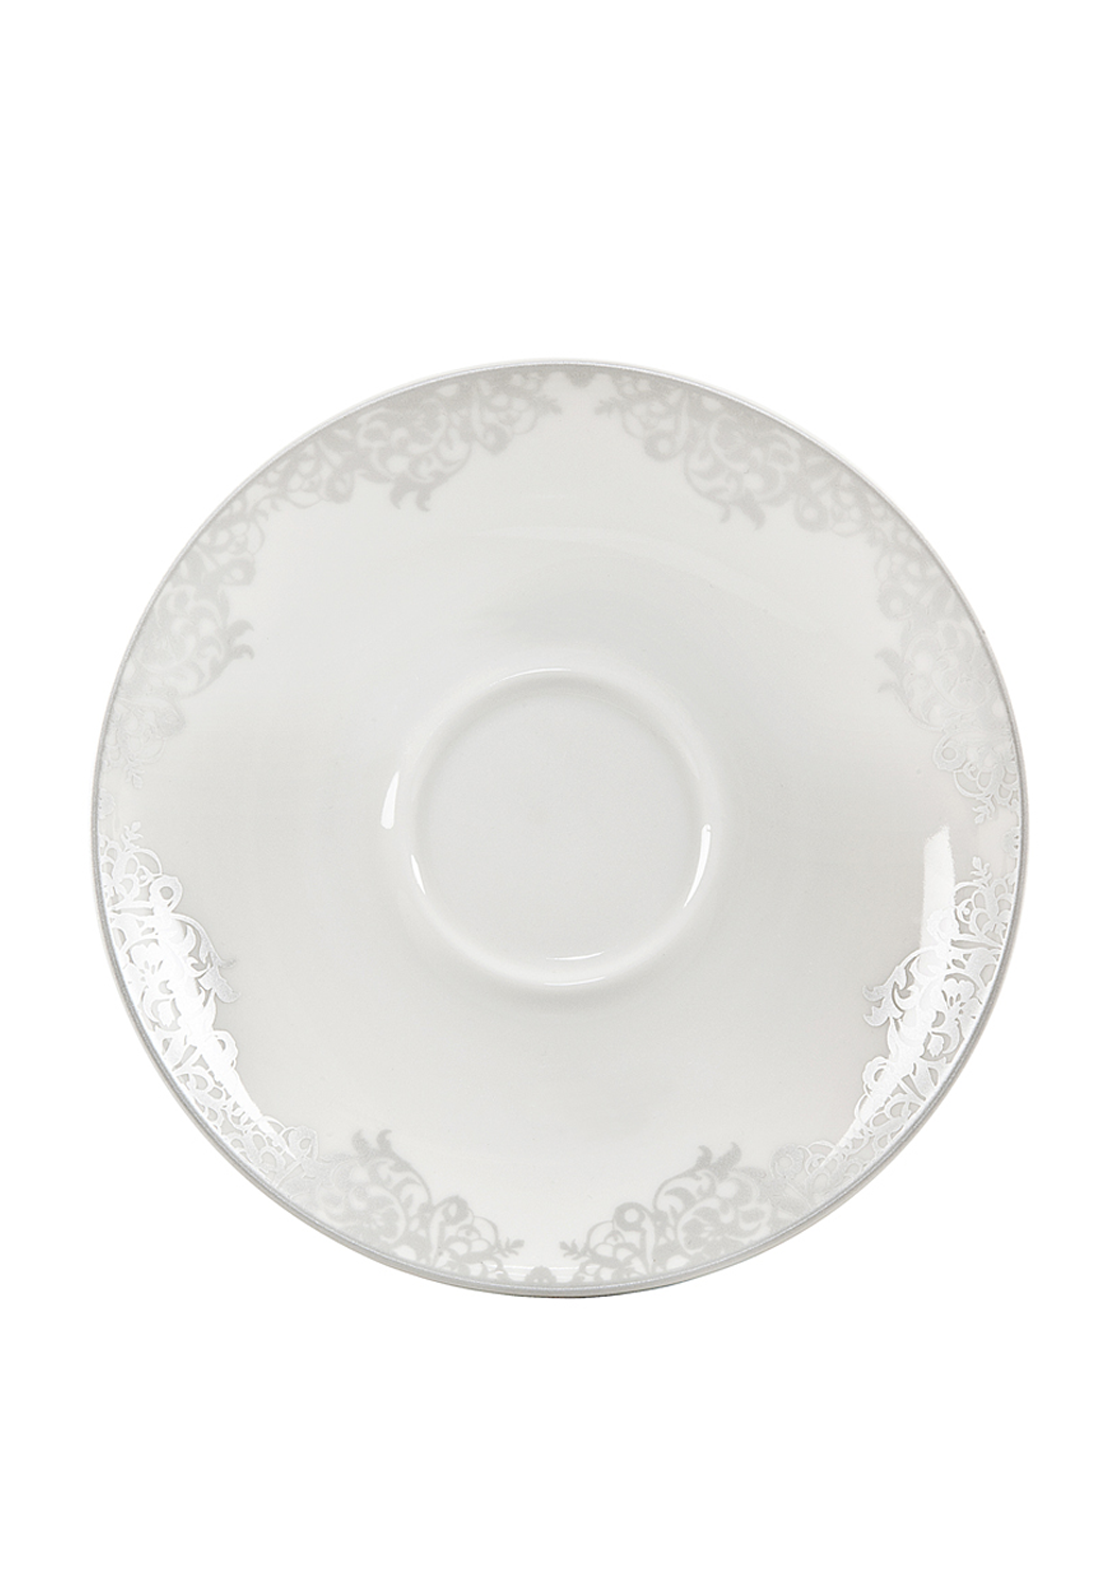 Denby Monsoon Filigree Tea Saucer, Silver